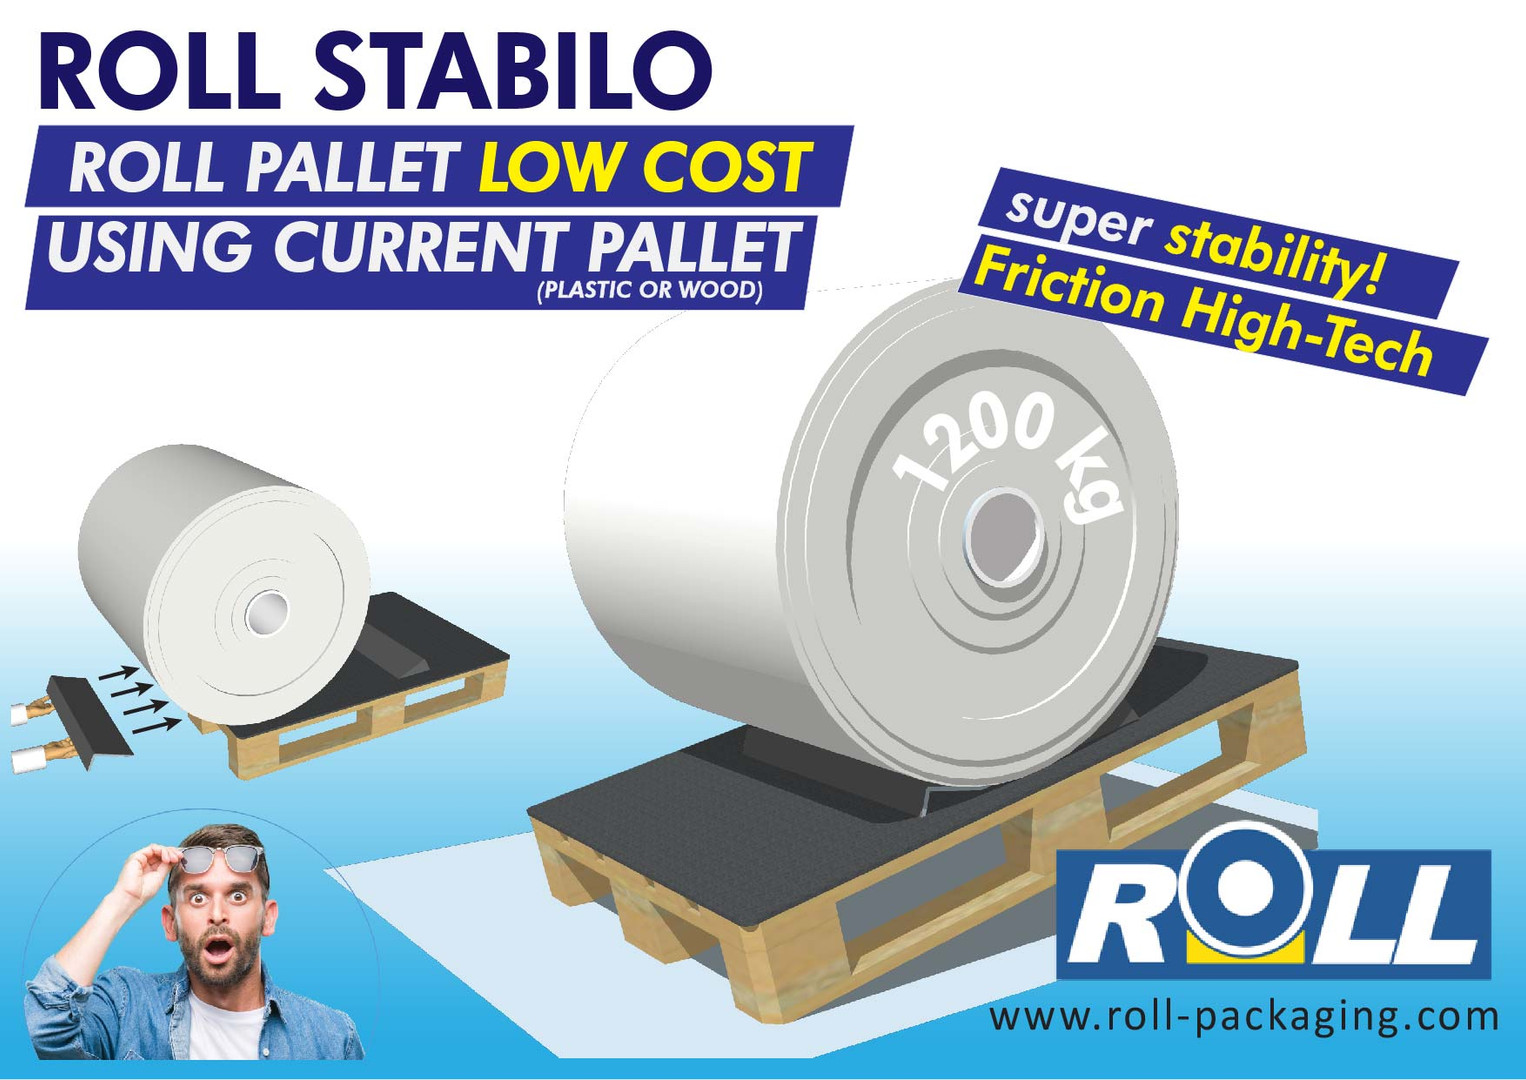 Campagna ROLL PALLET STABILO - ENG.jpg